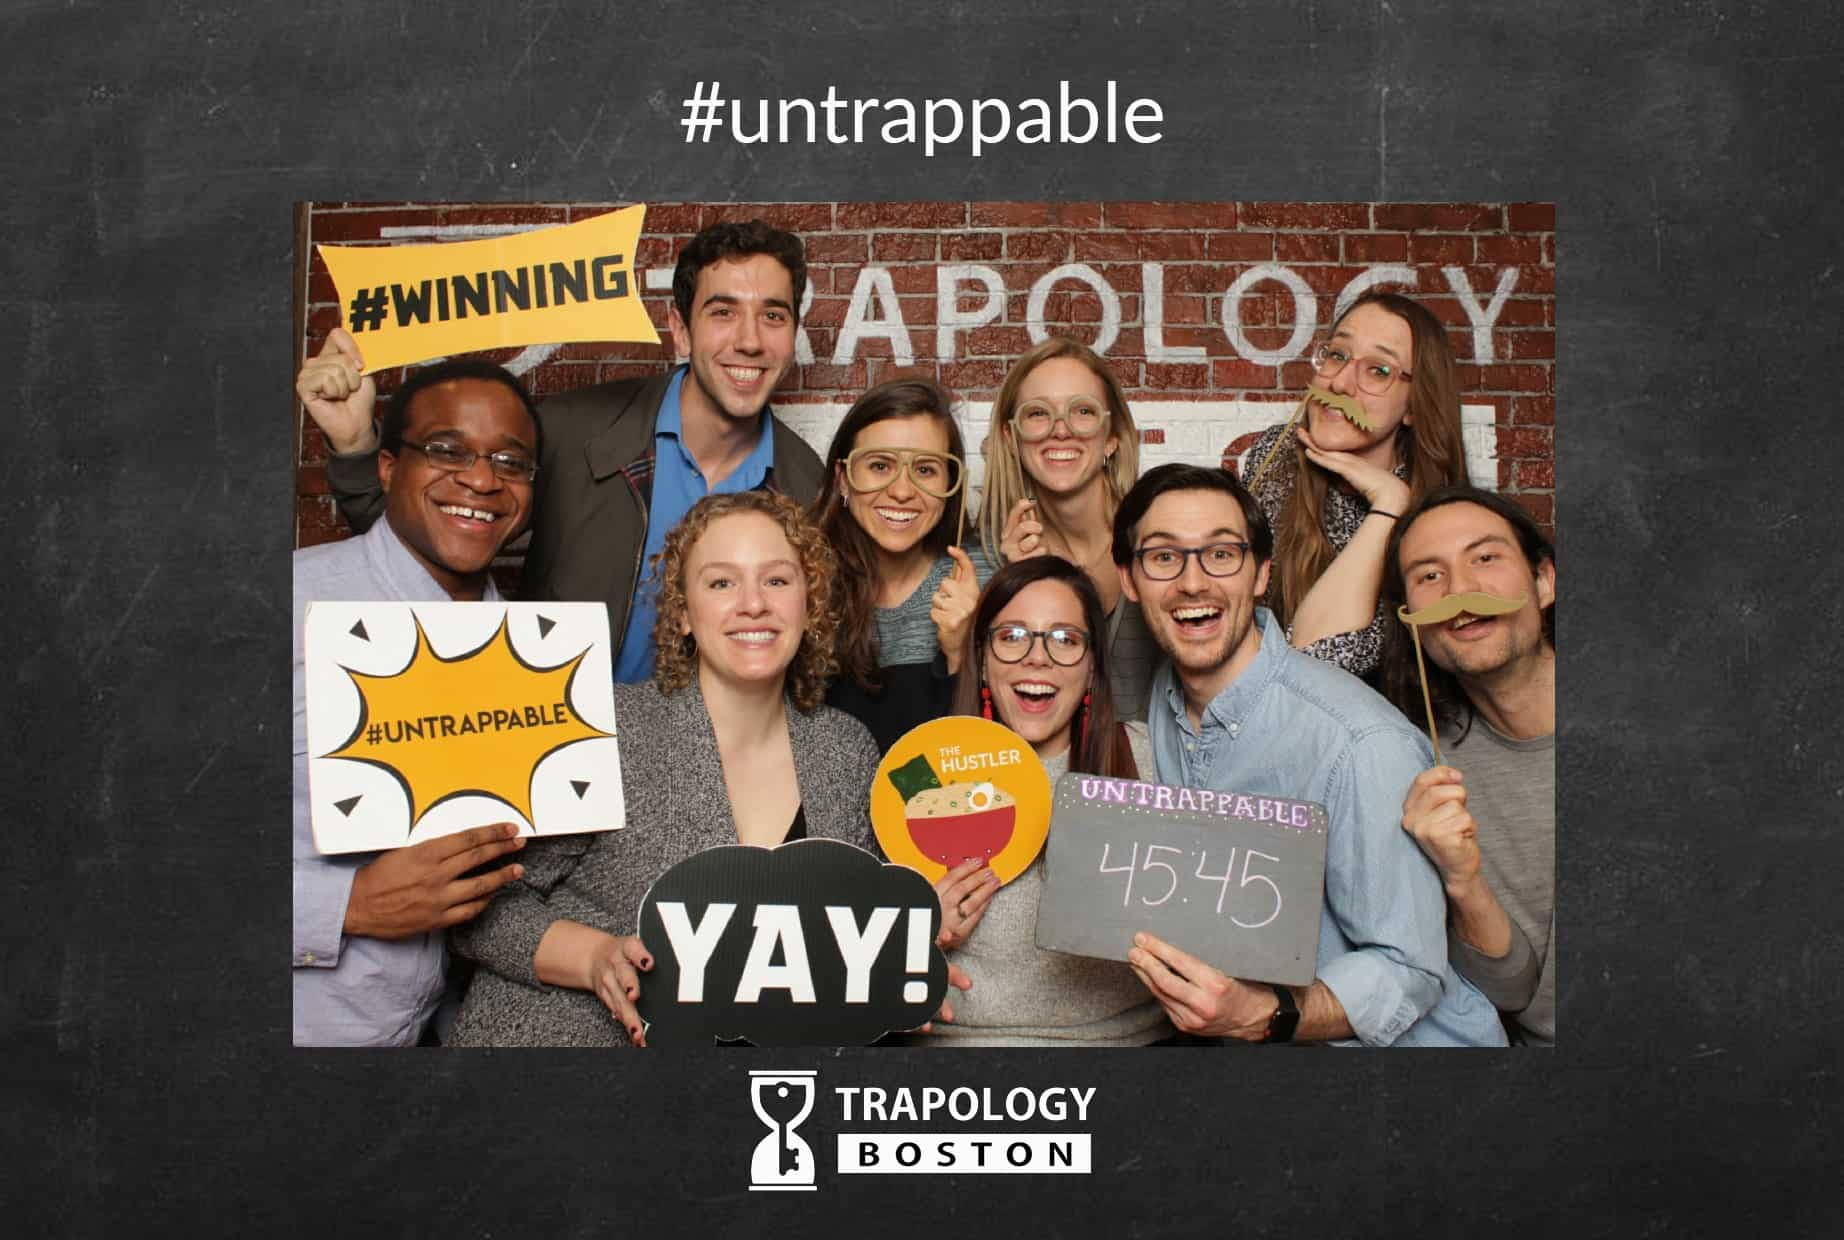 Escape rooms strengthen teams just like this one! A group of smiling successful escapees!